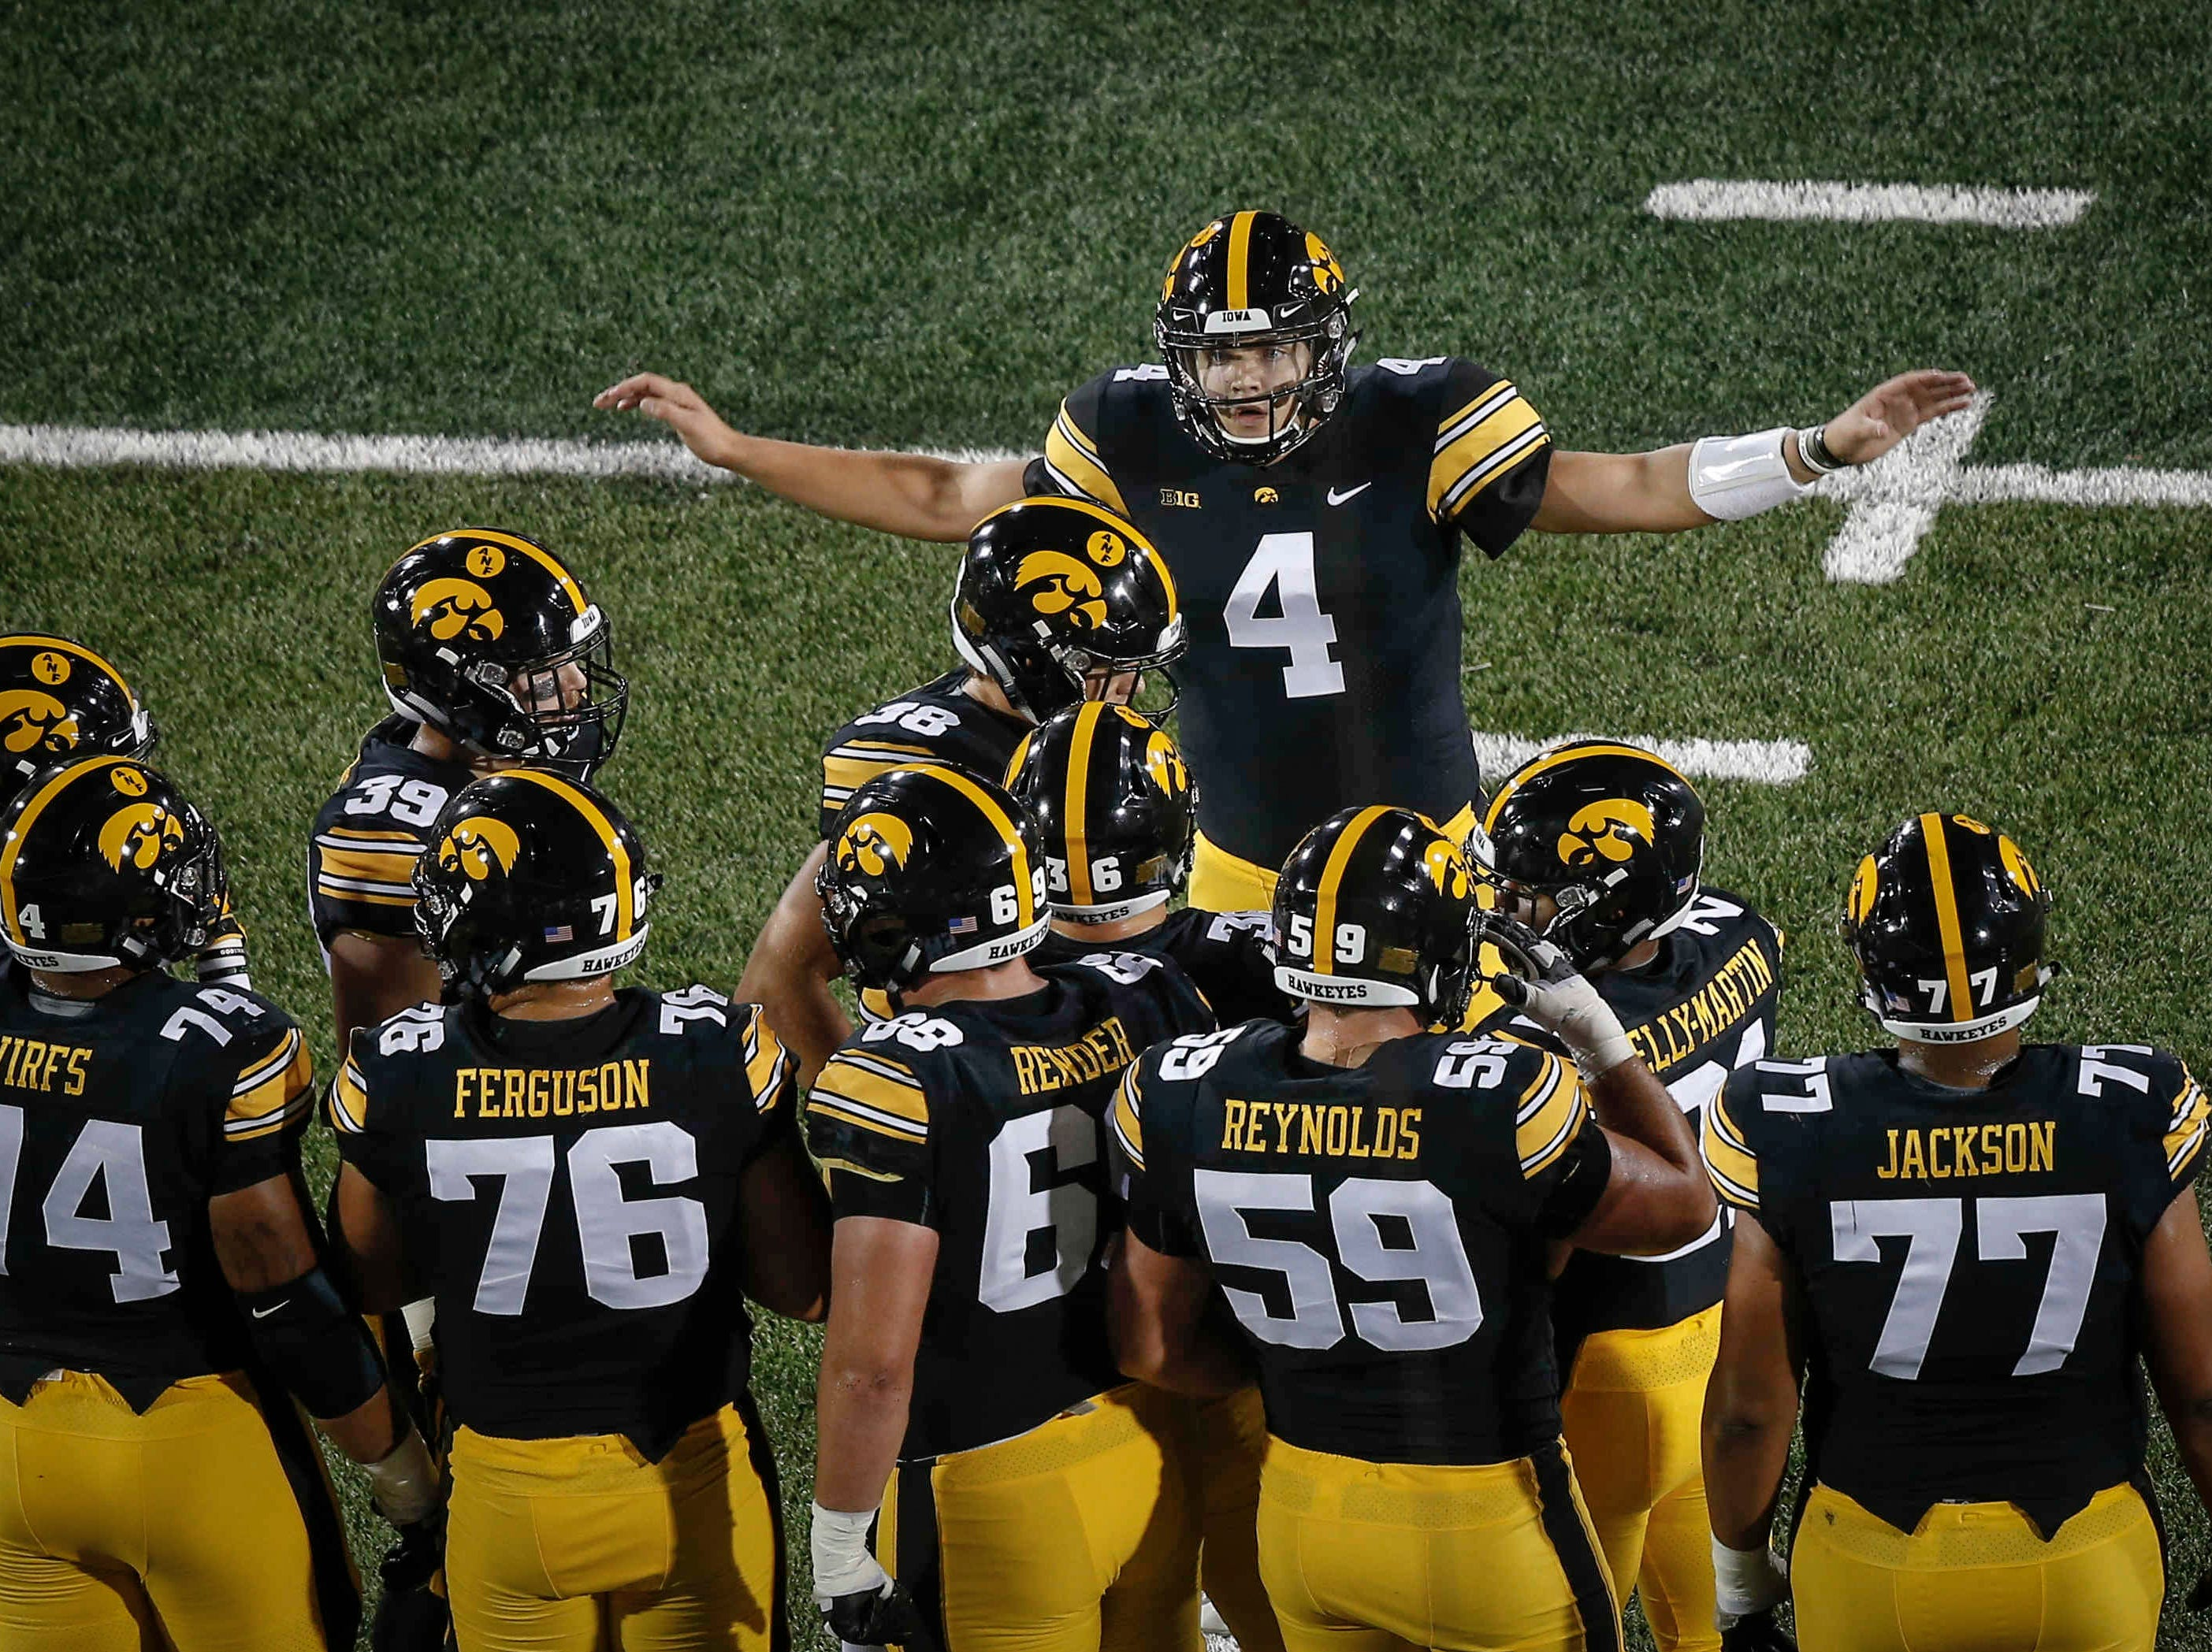 Iowa junior quarterback Nate Stanley calls a play to his offense against Wisconsin in the first quarter on Saturday, Sept. 22, 2018, at Kinnick Stadium in Iowa City.